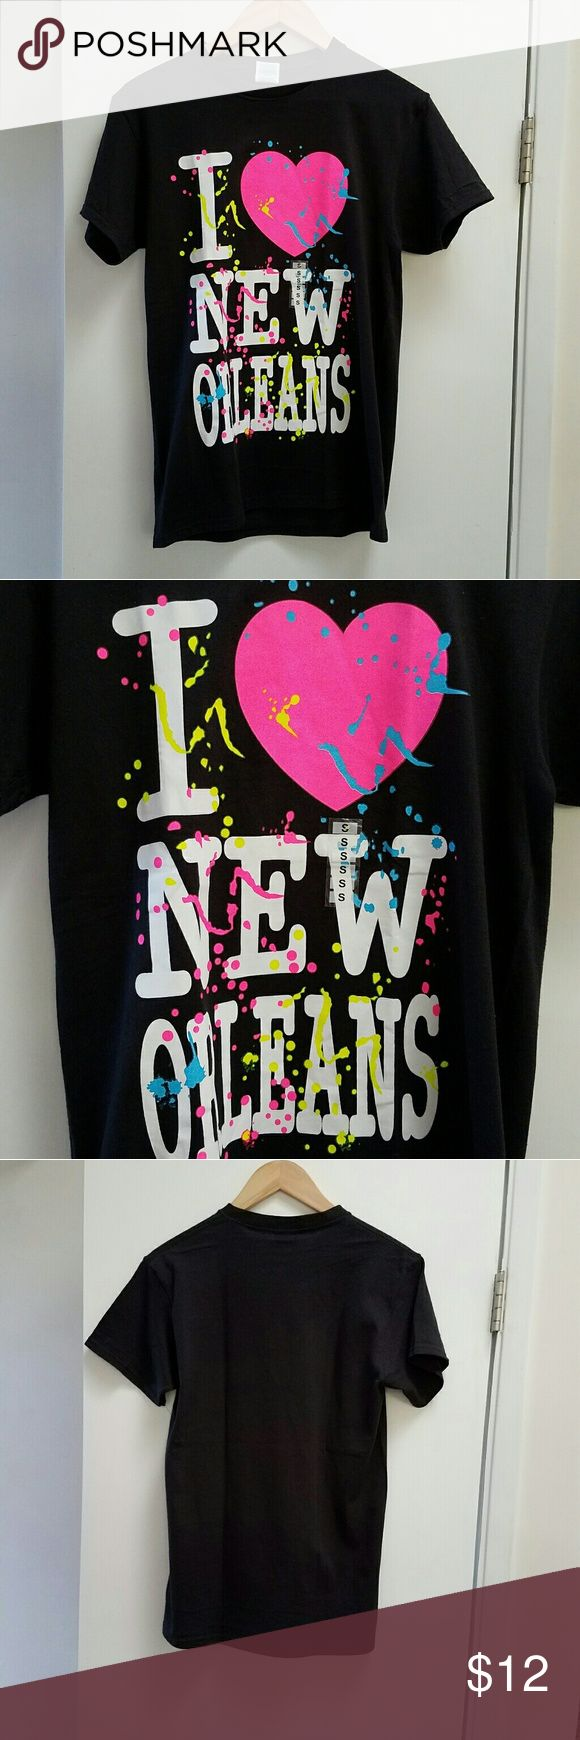 I Heart New Orleans 80s Tee T-Shirt Mardi Gras 80s vibe I heart NOLA Tee. Neon colors. Perfect for Mardi Gras or any time you're feeling festive. Brand new, with size sticker still attached. No hang tags. 100% Preshrunk cotton. Sz S. Not a fitted tee. Tops Tees - Short Sleeve